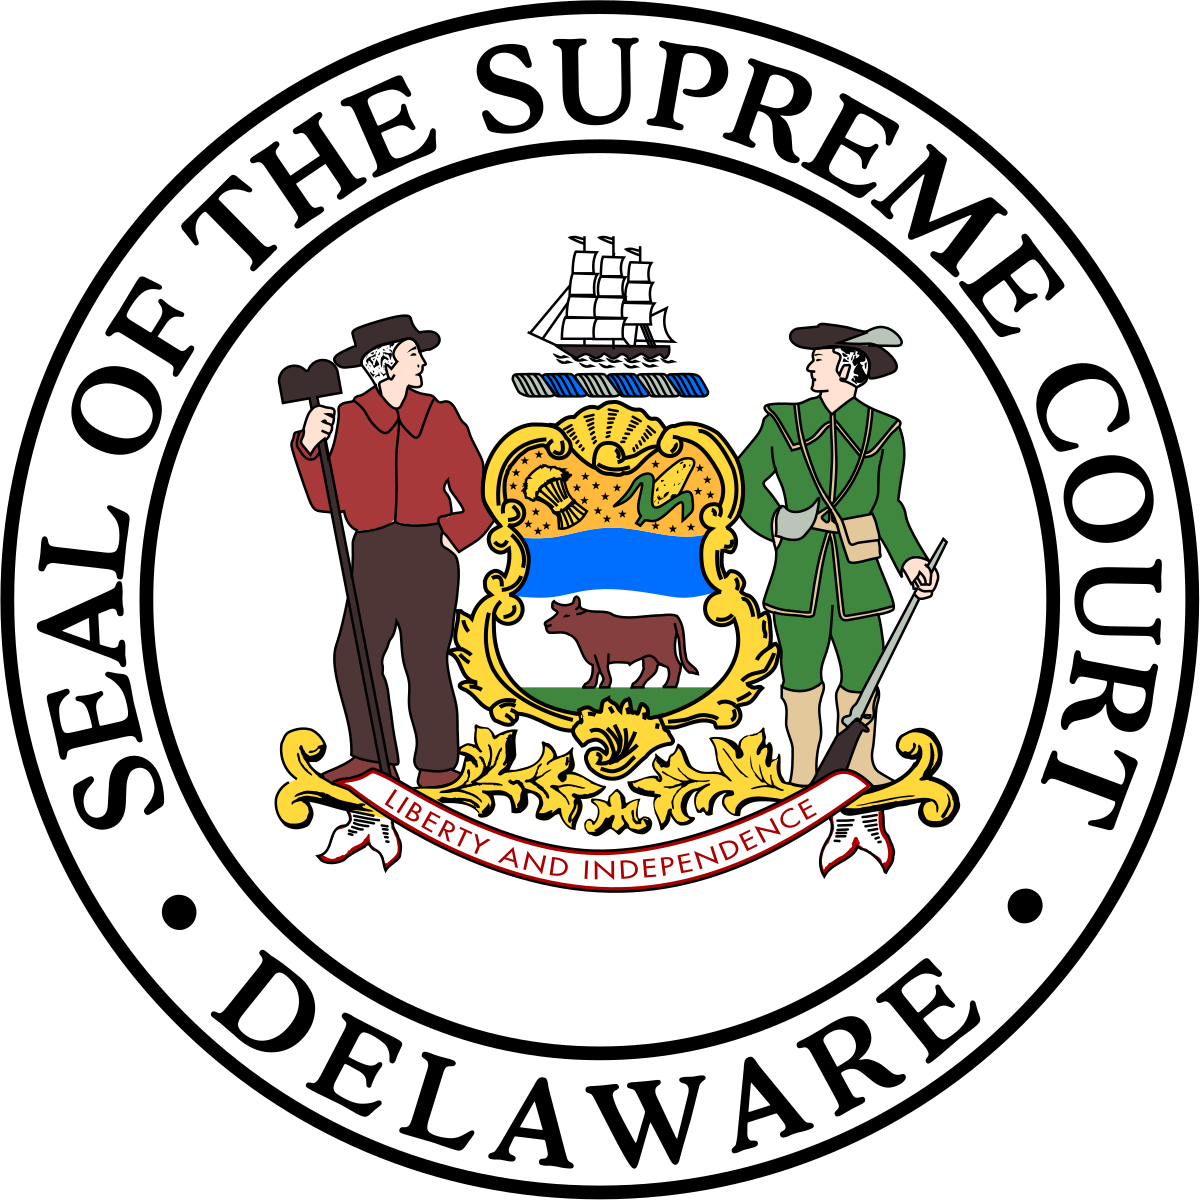 Supreme court house clipart vector freeuse library Supreme Court Drawing at GetDrawings.com | Free for personal use ... vector freeuse library